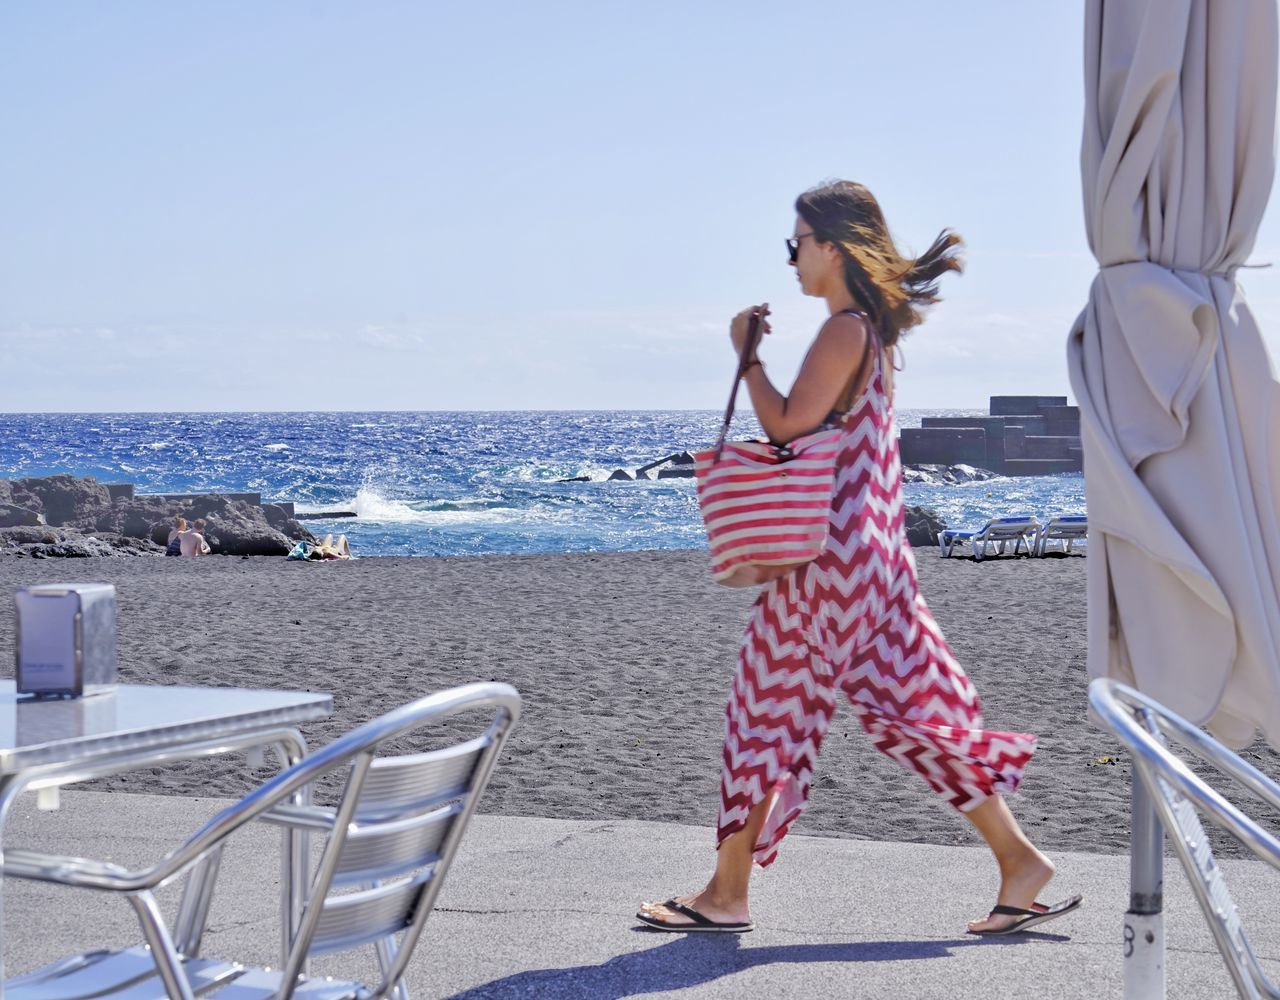 Sea Beach Full Length Leisure Activity Horizon Over Water Sky Summer Vacations One Person Outdoors Day One Woman Only Blue La Palma Island Los Concajos